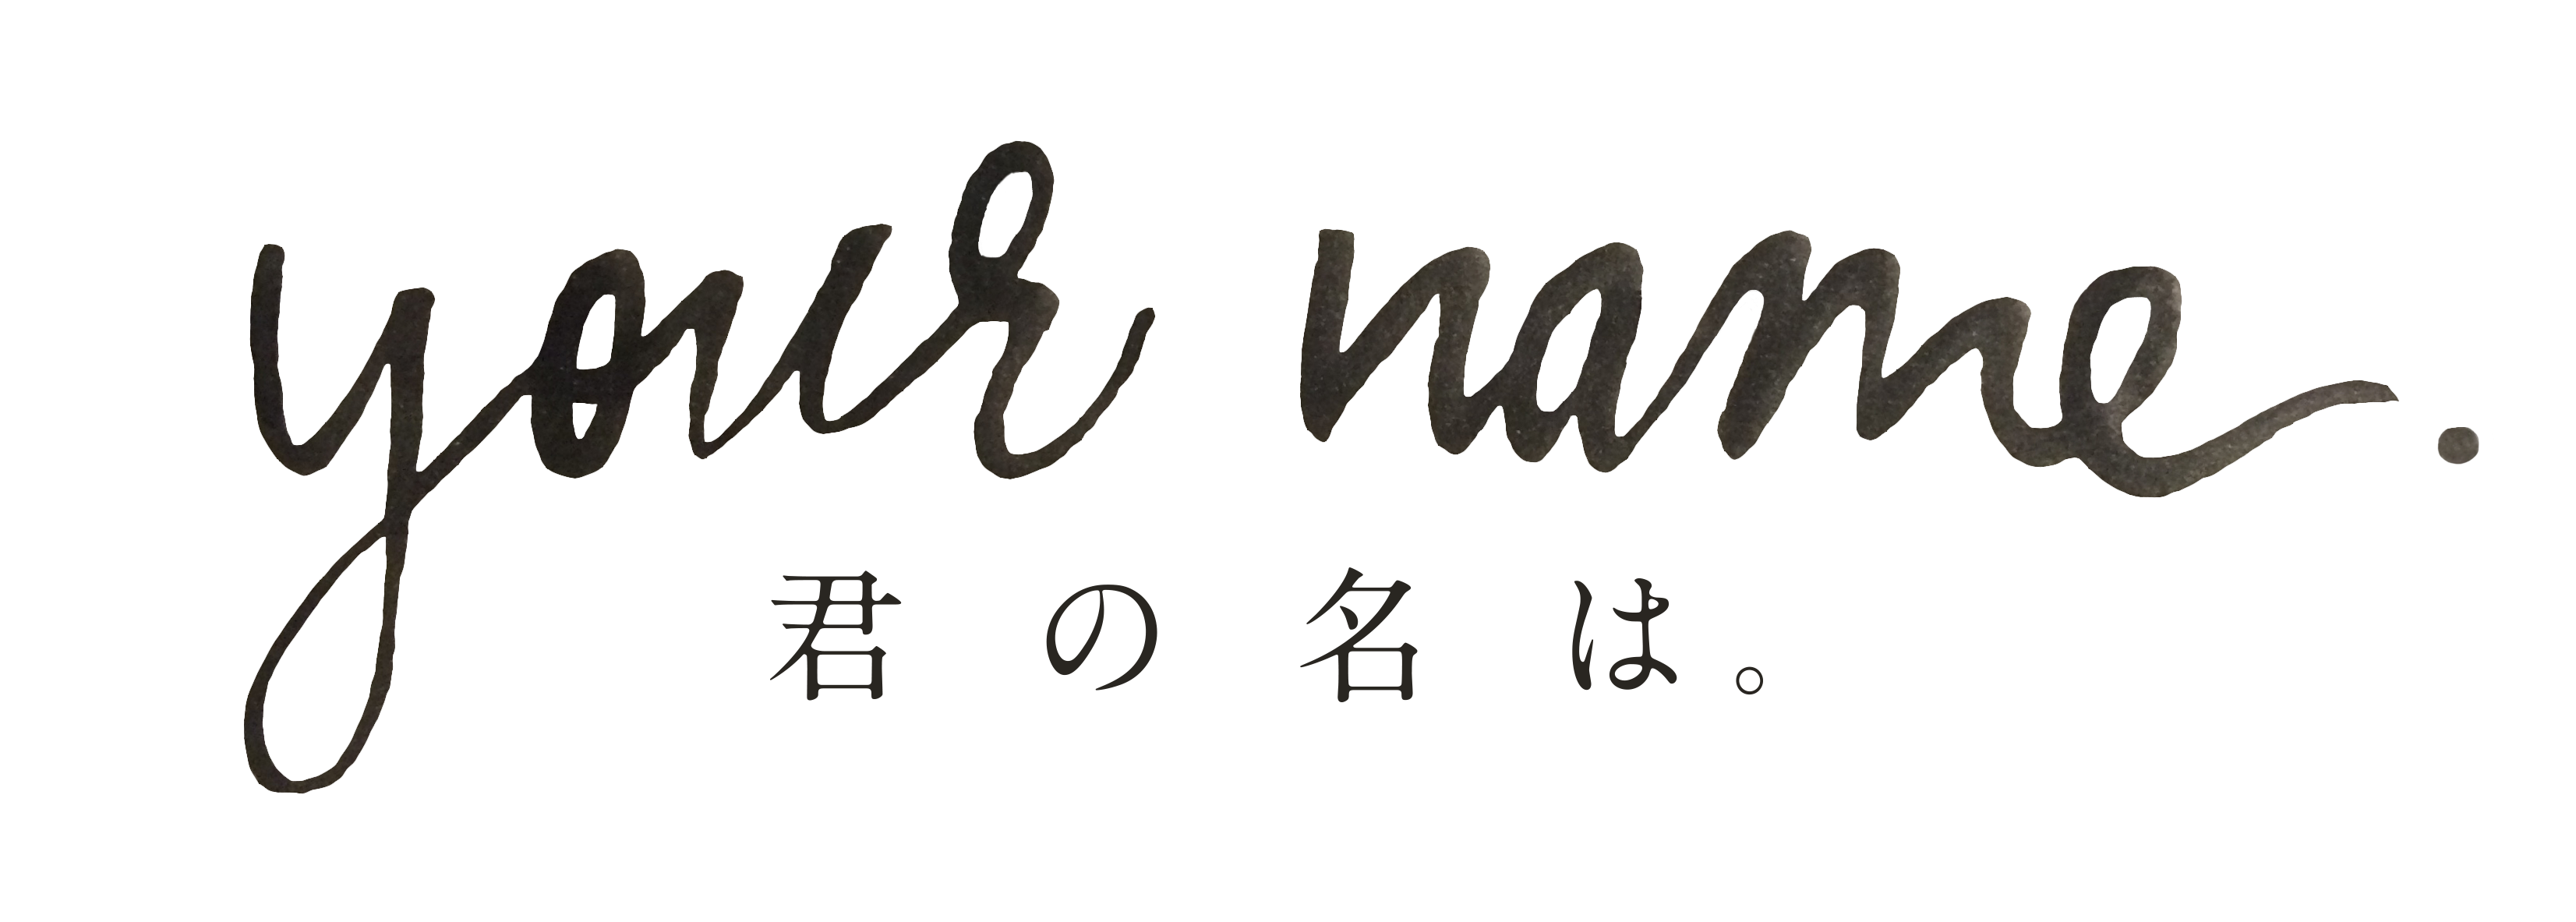 Une adaptation live américaine de Your Name (Kimi no Na wa) YourName-logo